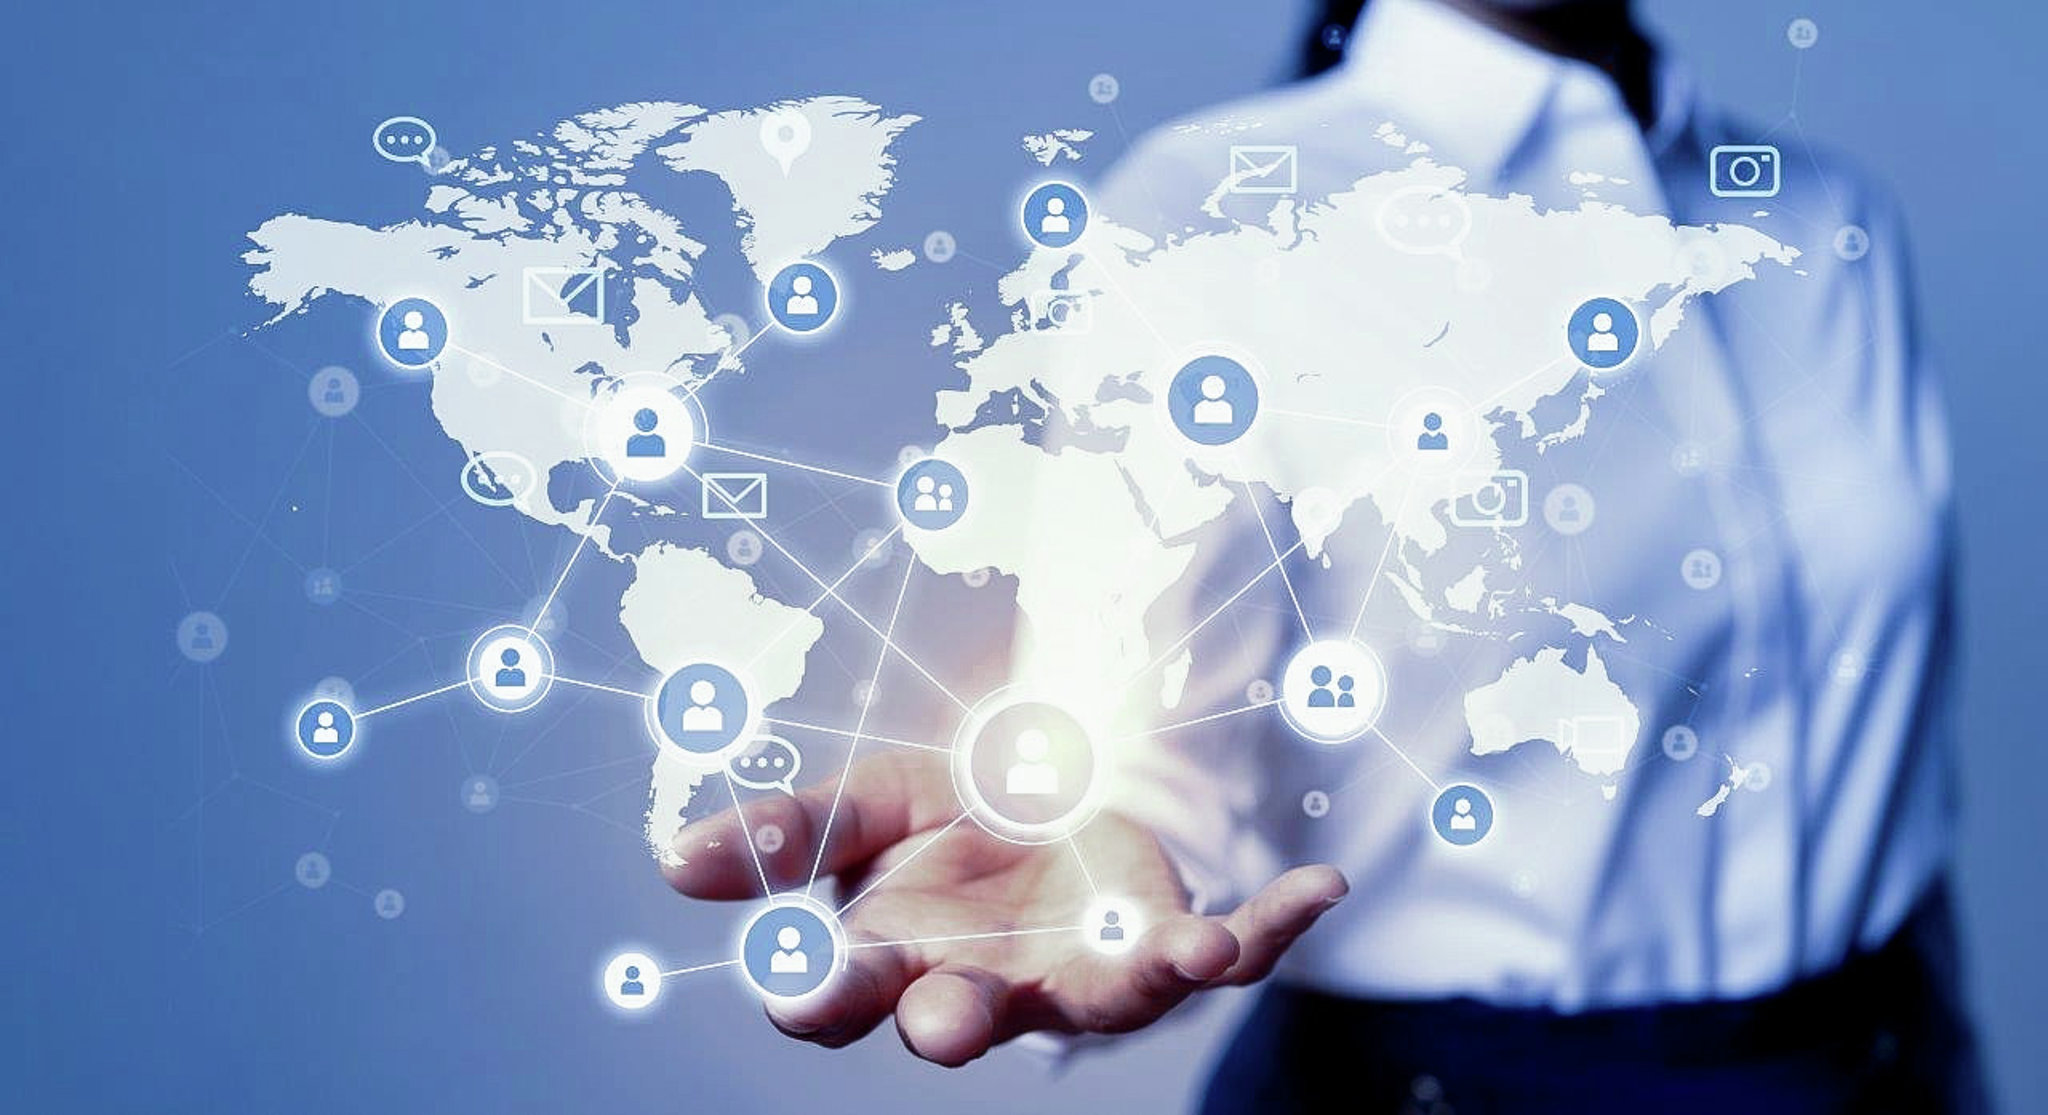 """A person wearing a blouse stretching her hand, """"holding"""" a worldmap and an organizational chart"""